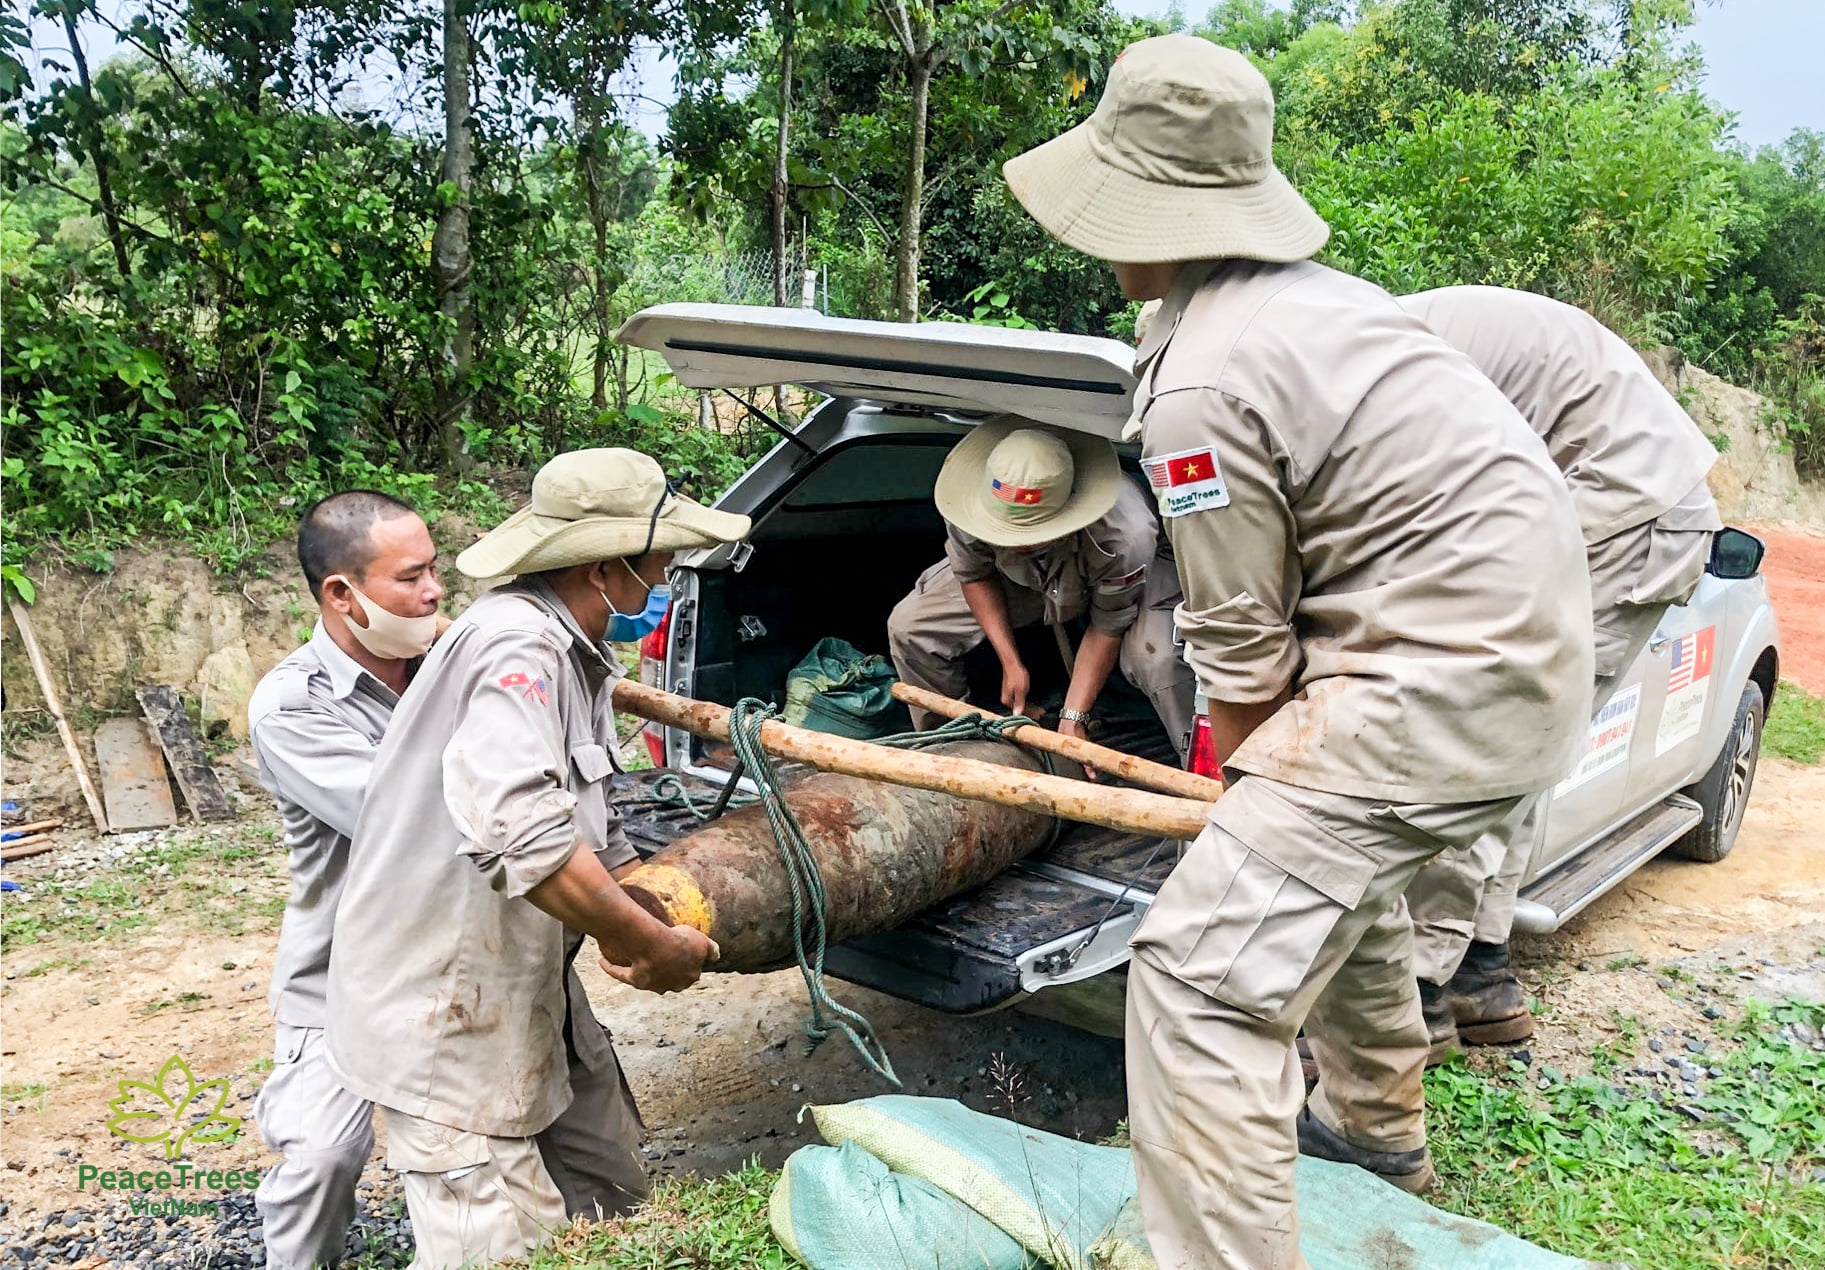 PeaceTrees continues UXO clearing efforts in Quang Tri